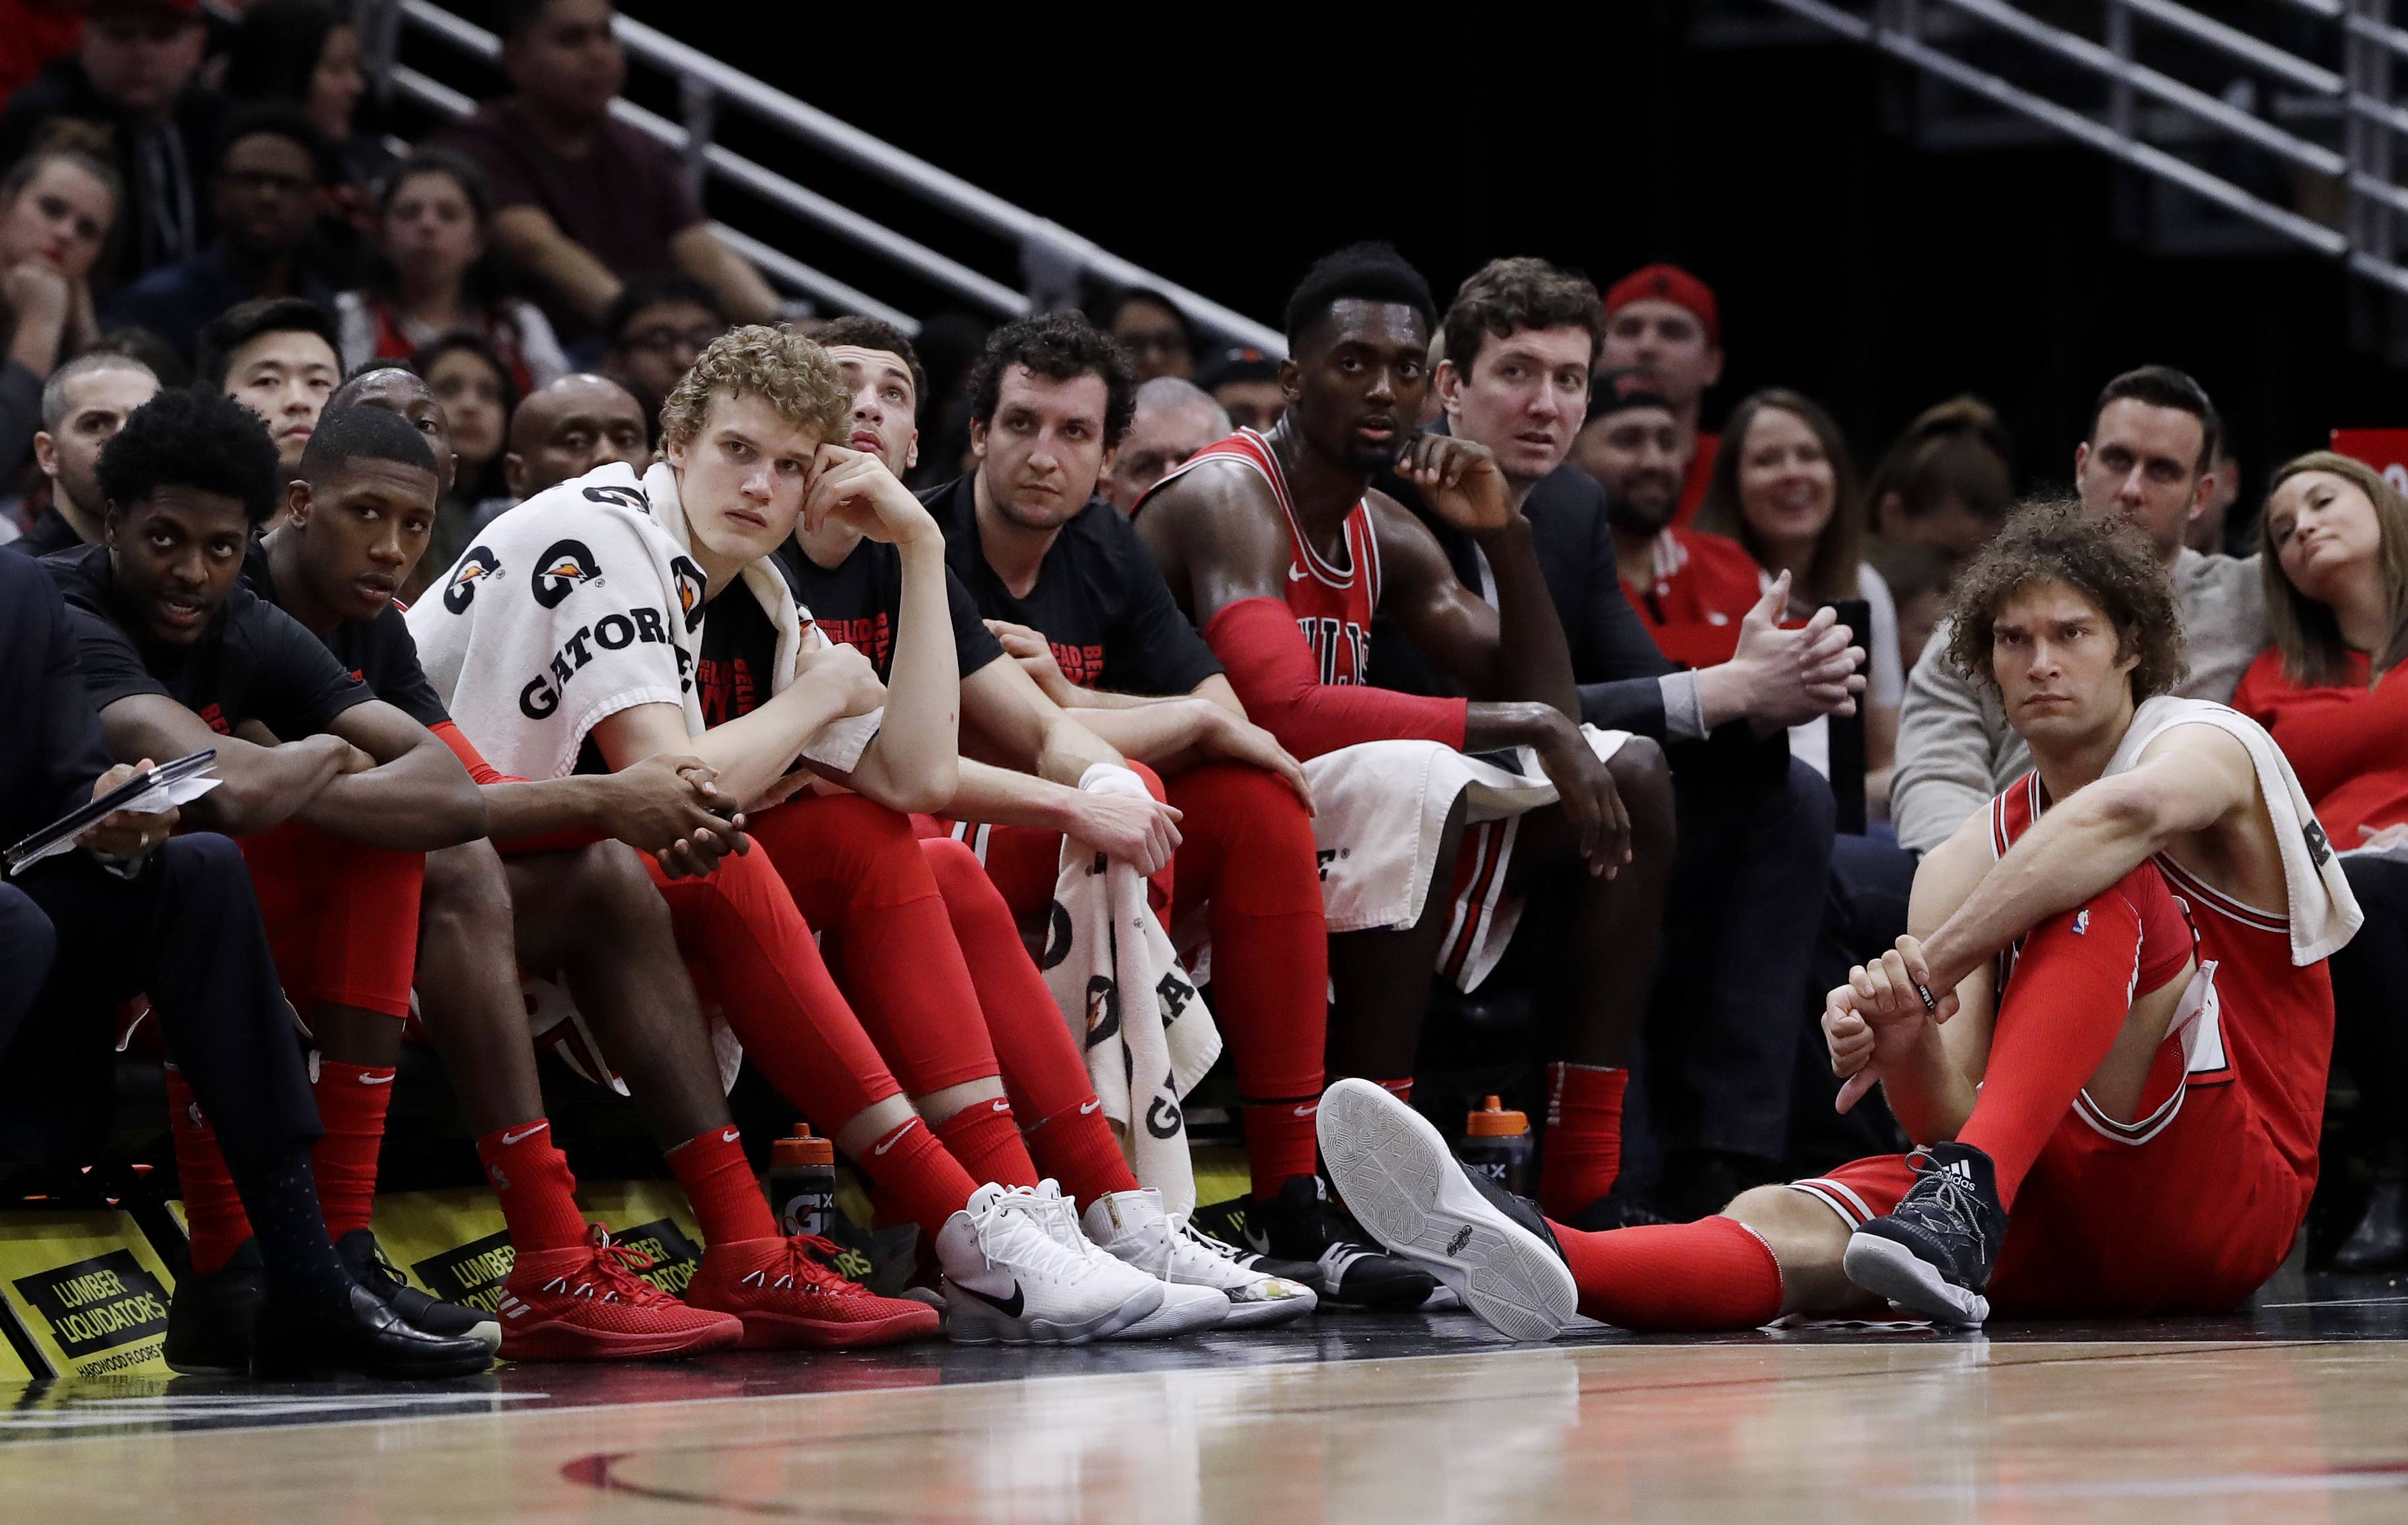 Chicago Bulls players react as they watch teammates during the second half of an NBA basketball game against the Toronto Raptors, Wednesday, Feb. 14, 2018, in Chicago. The Raptors won 122-98. (AP Photo/Nam Y. Huh)